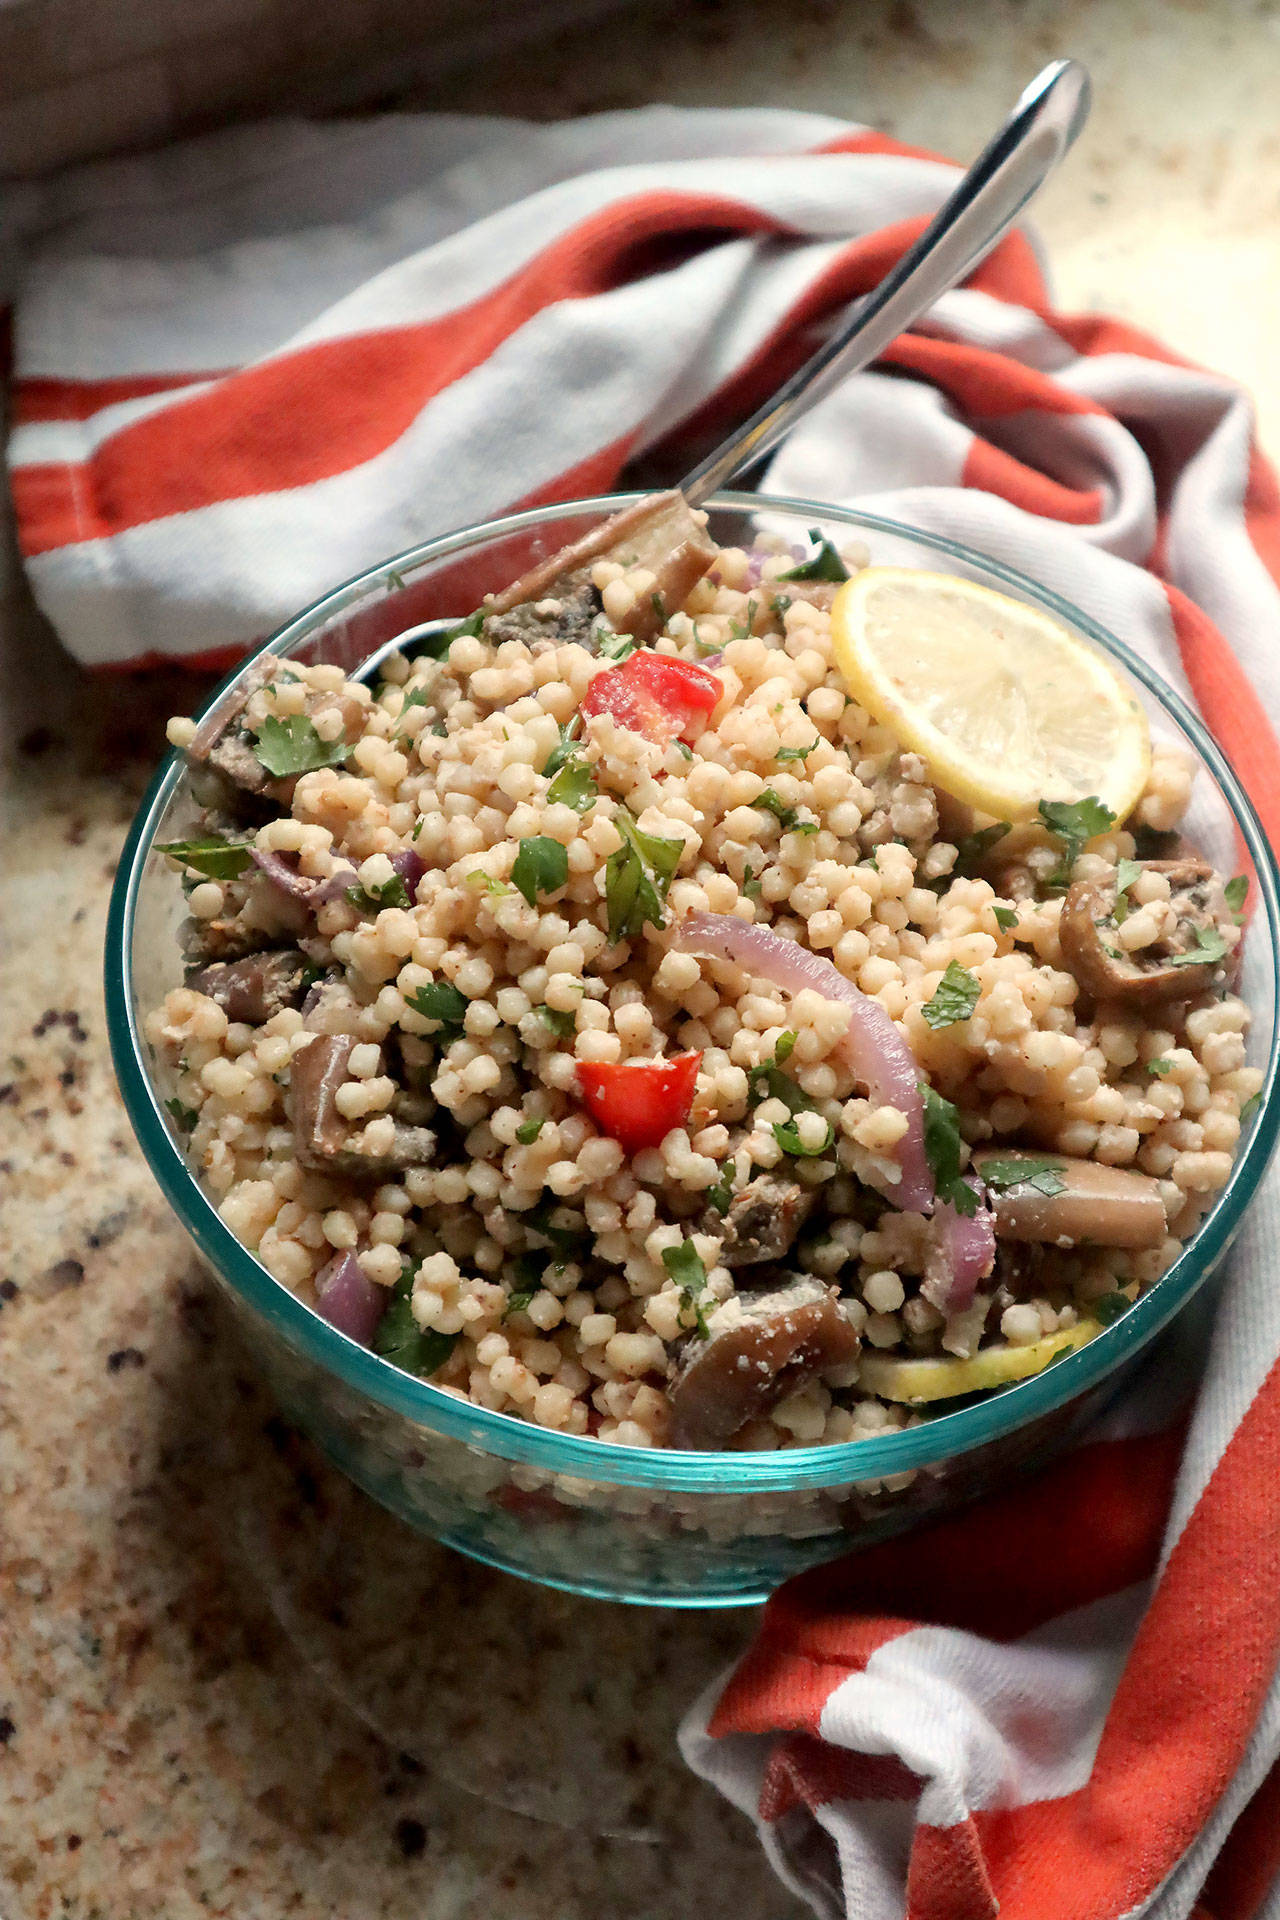 Roasted eggplant is tossed with Israeli couscous, tomatoes, fresh herbs and a lemony tahini dressing. (Gretchen McKay / Pittsburgh Post-Gazette)